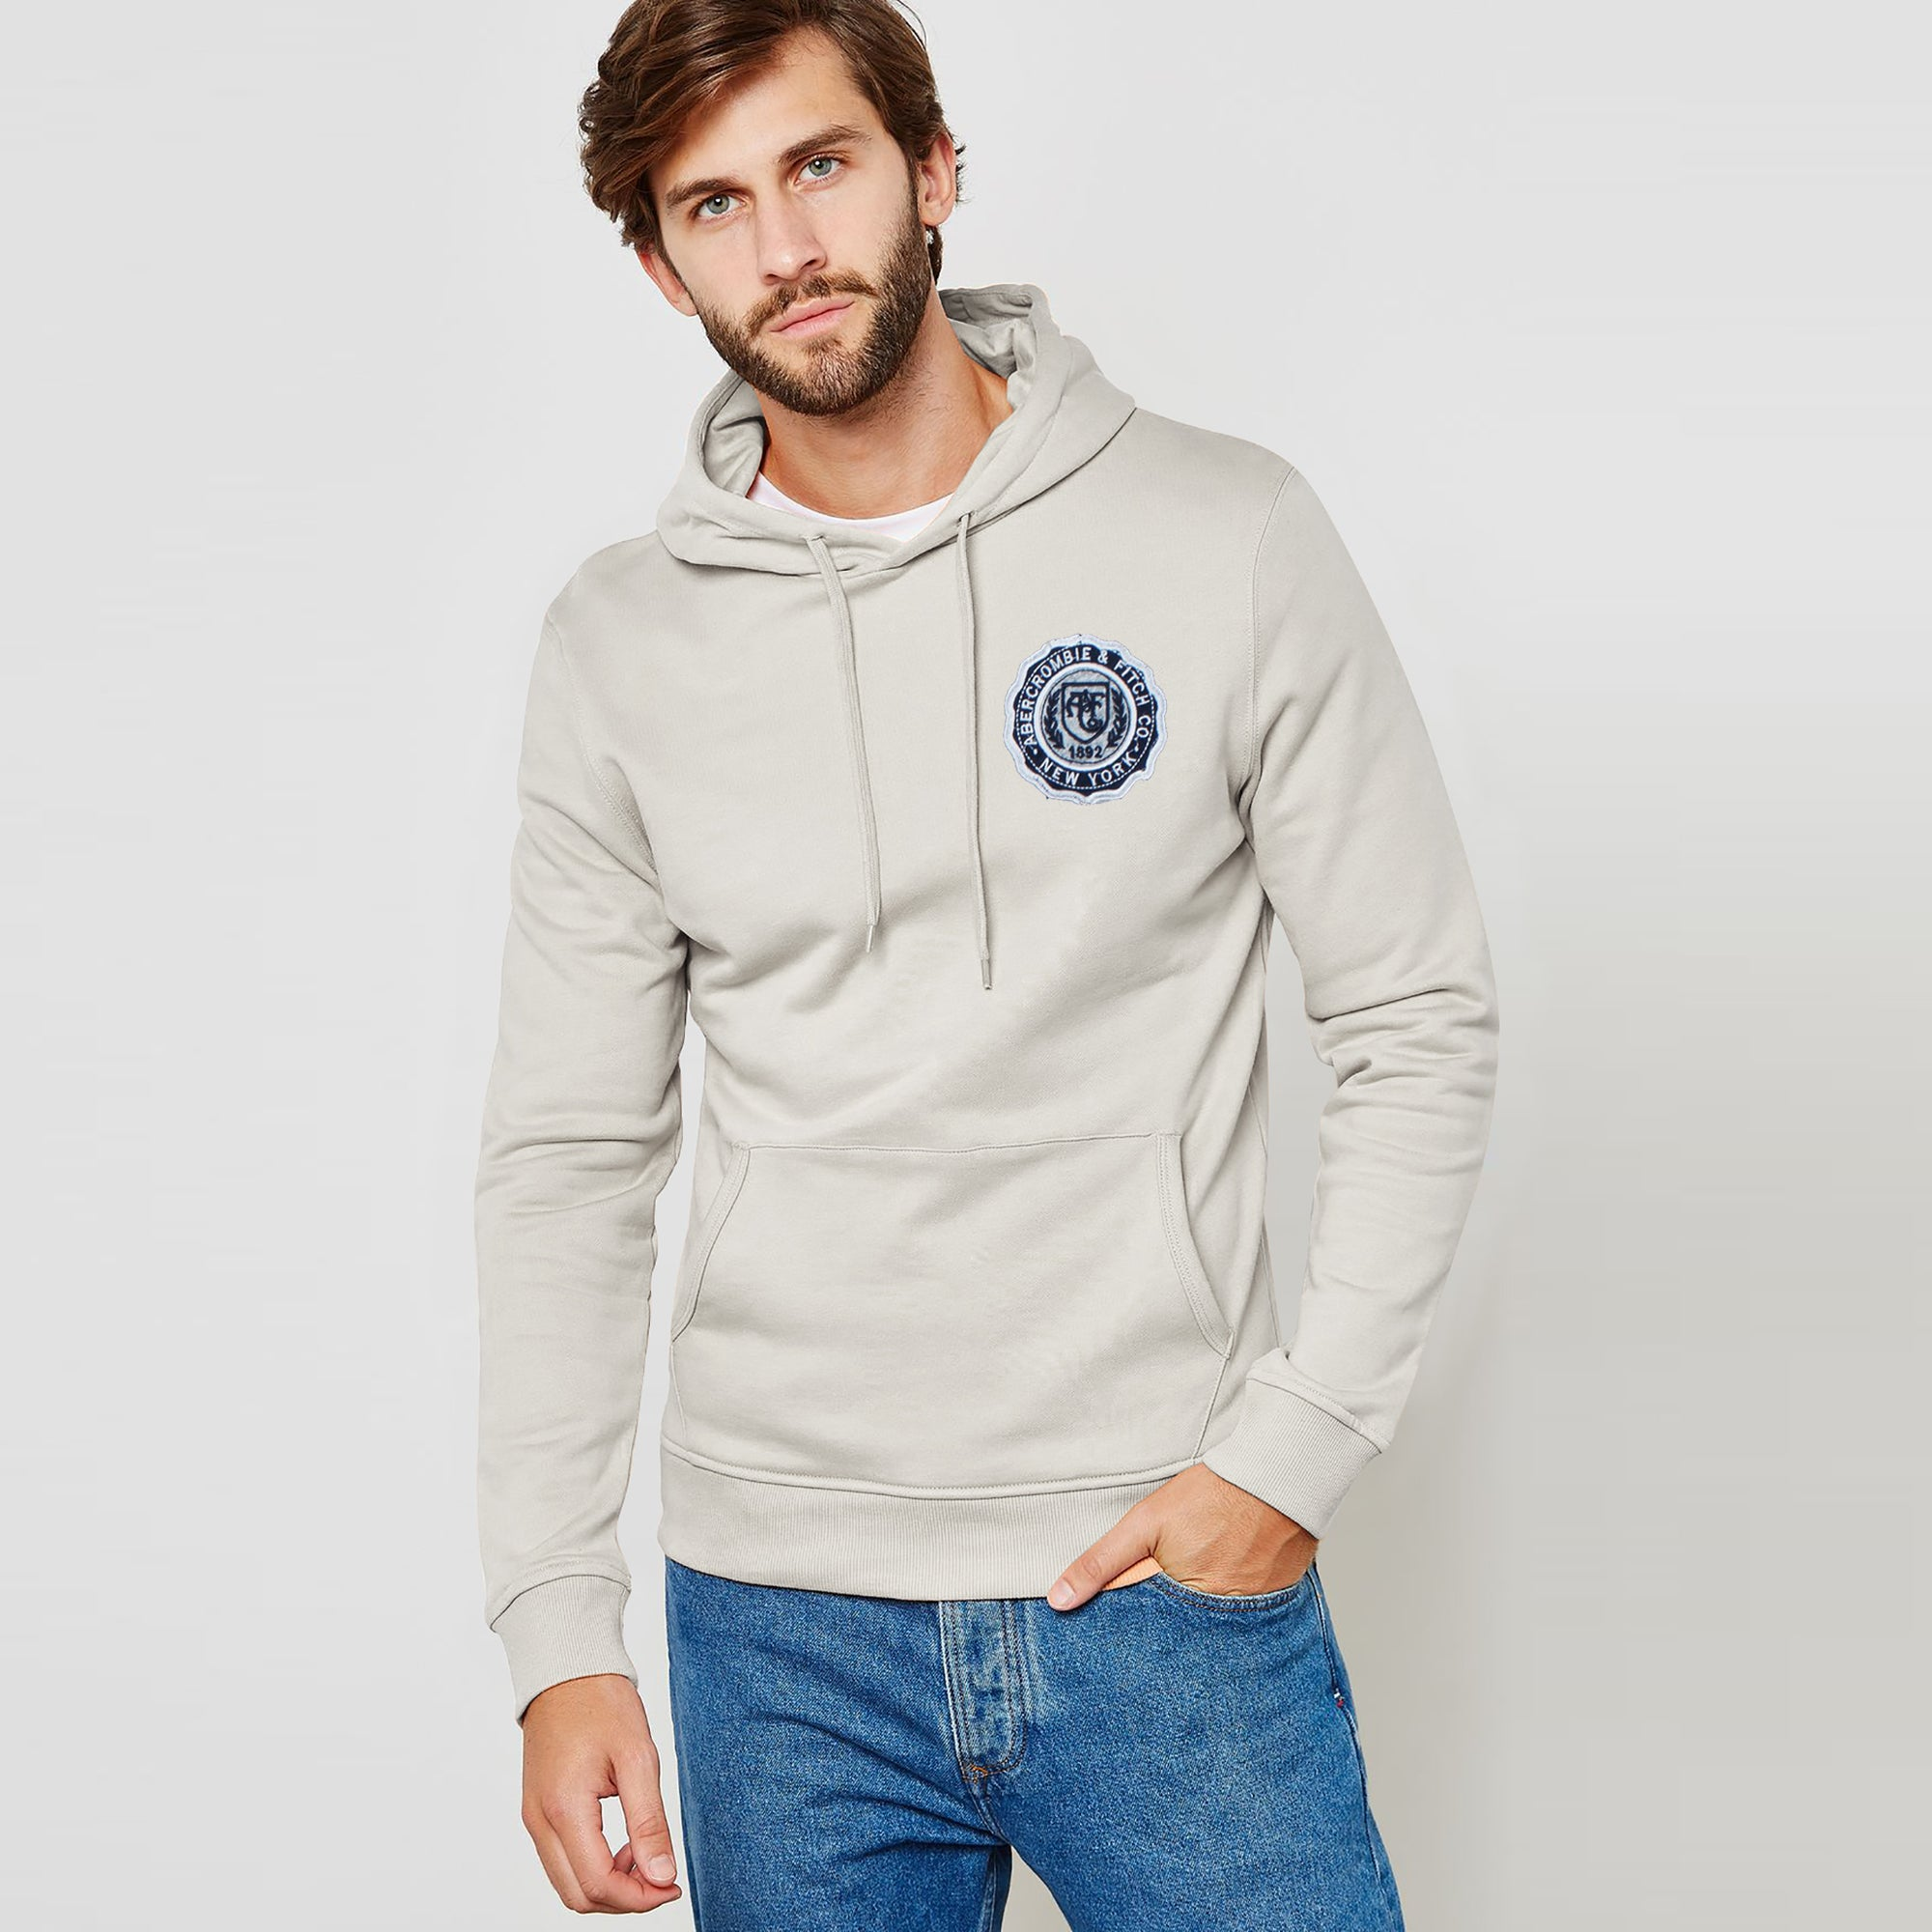 A&F Fleece Zipper Hoodie For Men-Off White-BE7768